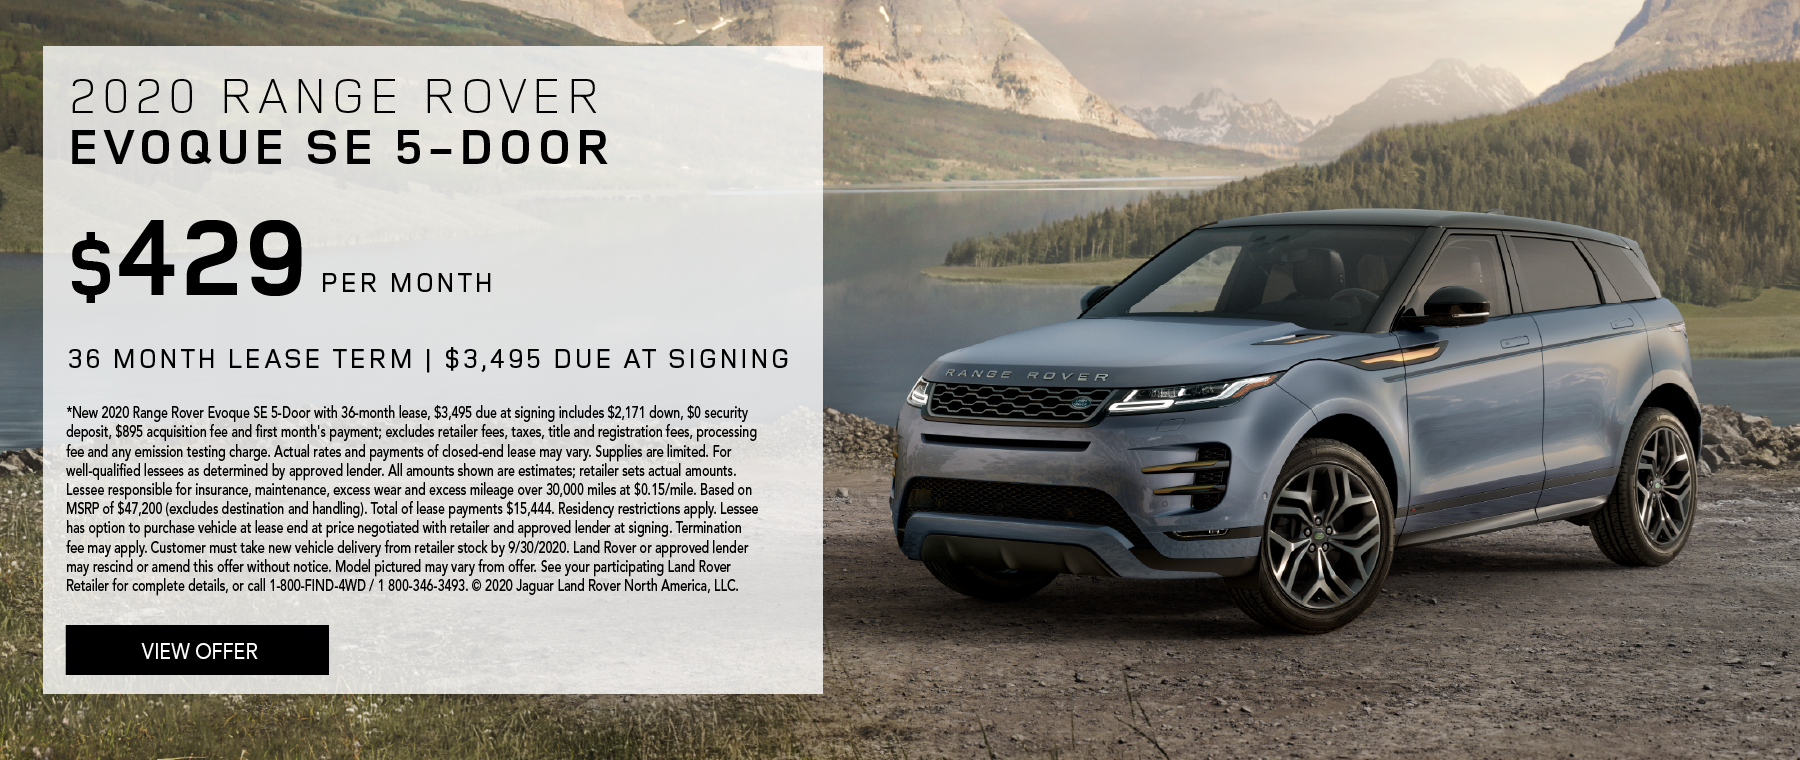 2020 RANGE ROVER EVOQUE SE 5-DOOR. $429 PER MONTH. 36 MONTH LEASE TERM. $3,495 CASH DUE AT SIGNING. $0 SECURITY DEPOSIT. 10,000 MILES PER YEAR. EXCLUDES RETAILER FEES, TAXES, TITLE AND REGISTRATION FEES, PROCESSING FEE AND ANY EMISSION TESTING CHARGE. ENDS 9/30/2020.